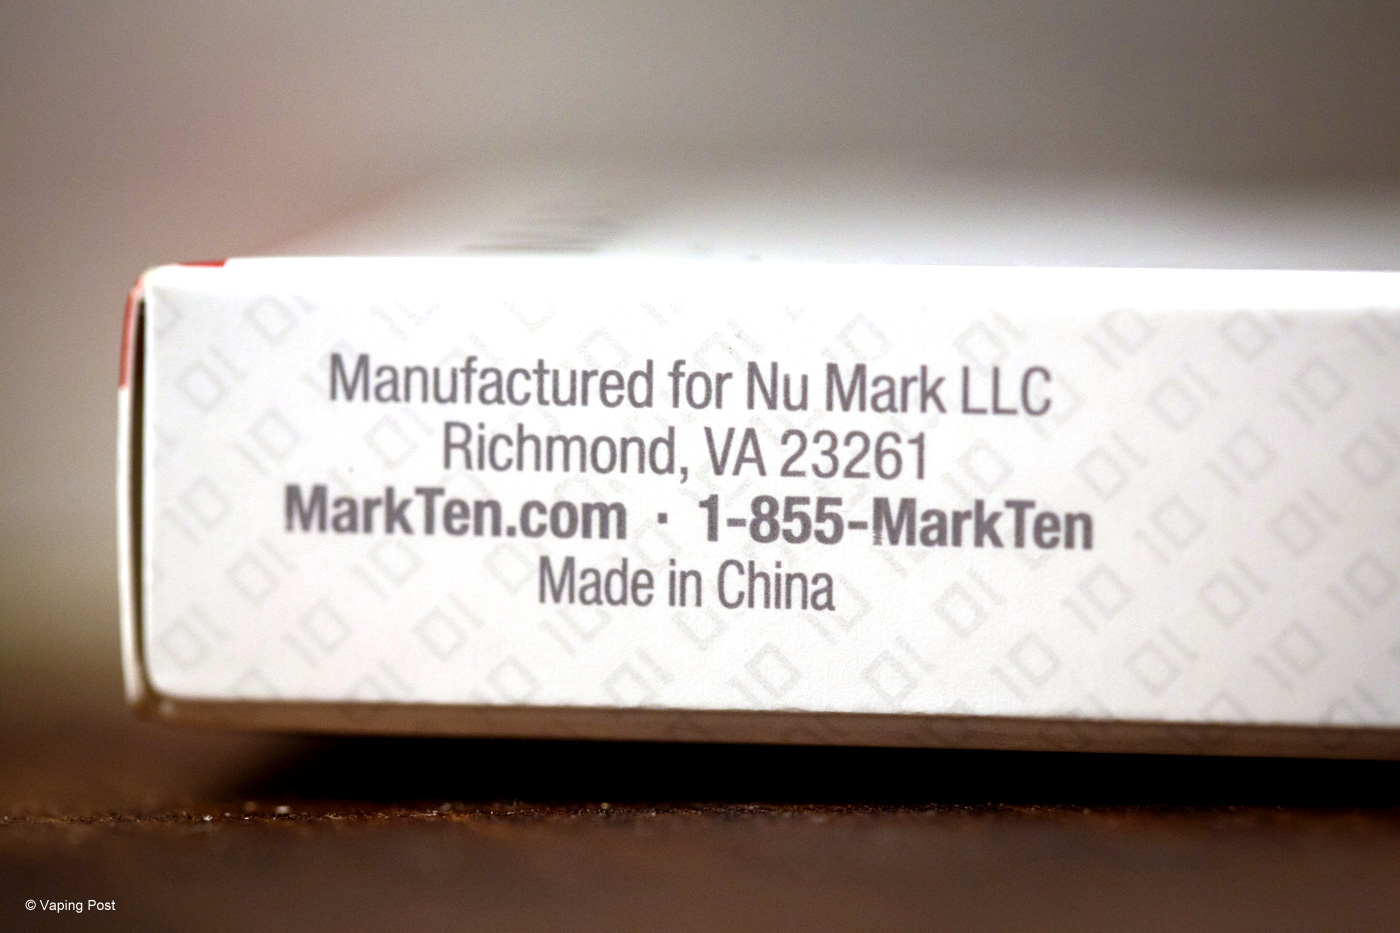 Mark Ten is commercialized by Nu Mark in the US, an Altria's subsidiary.